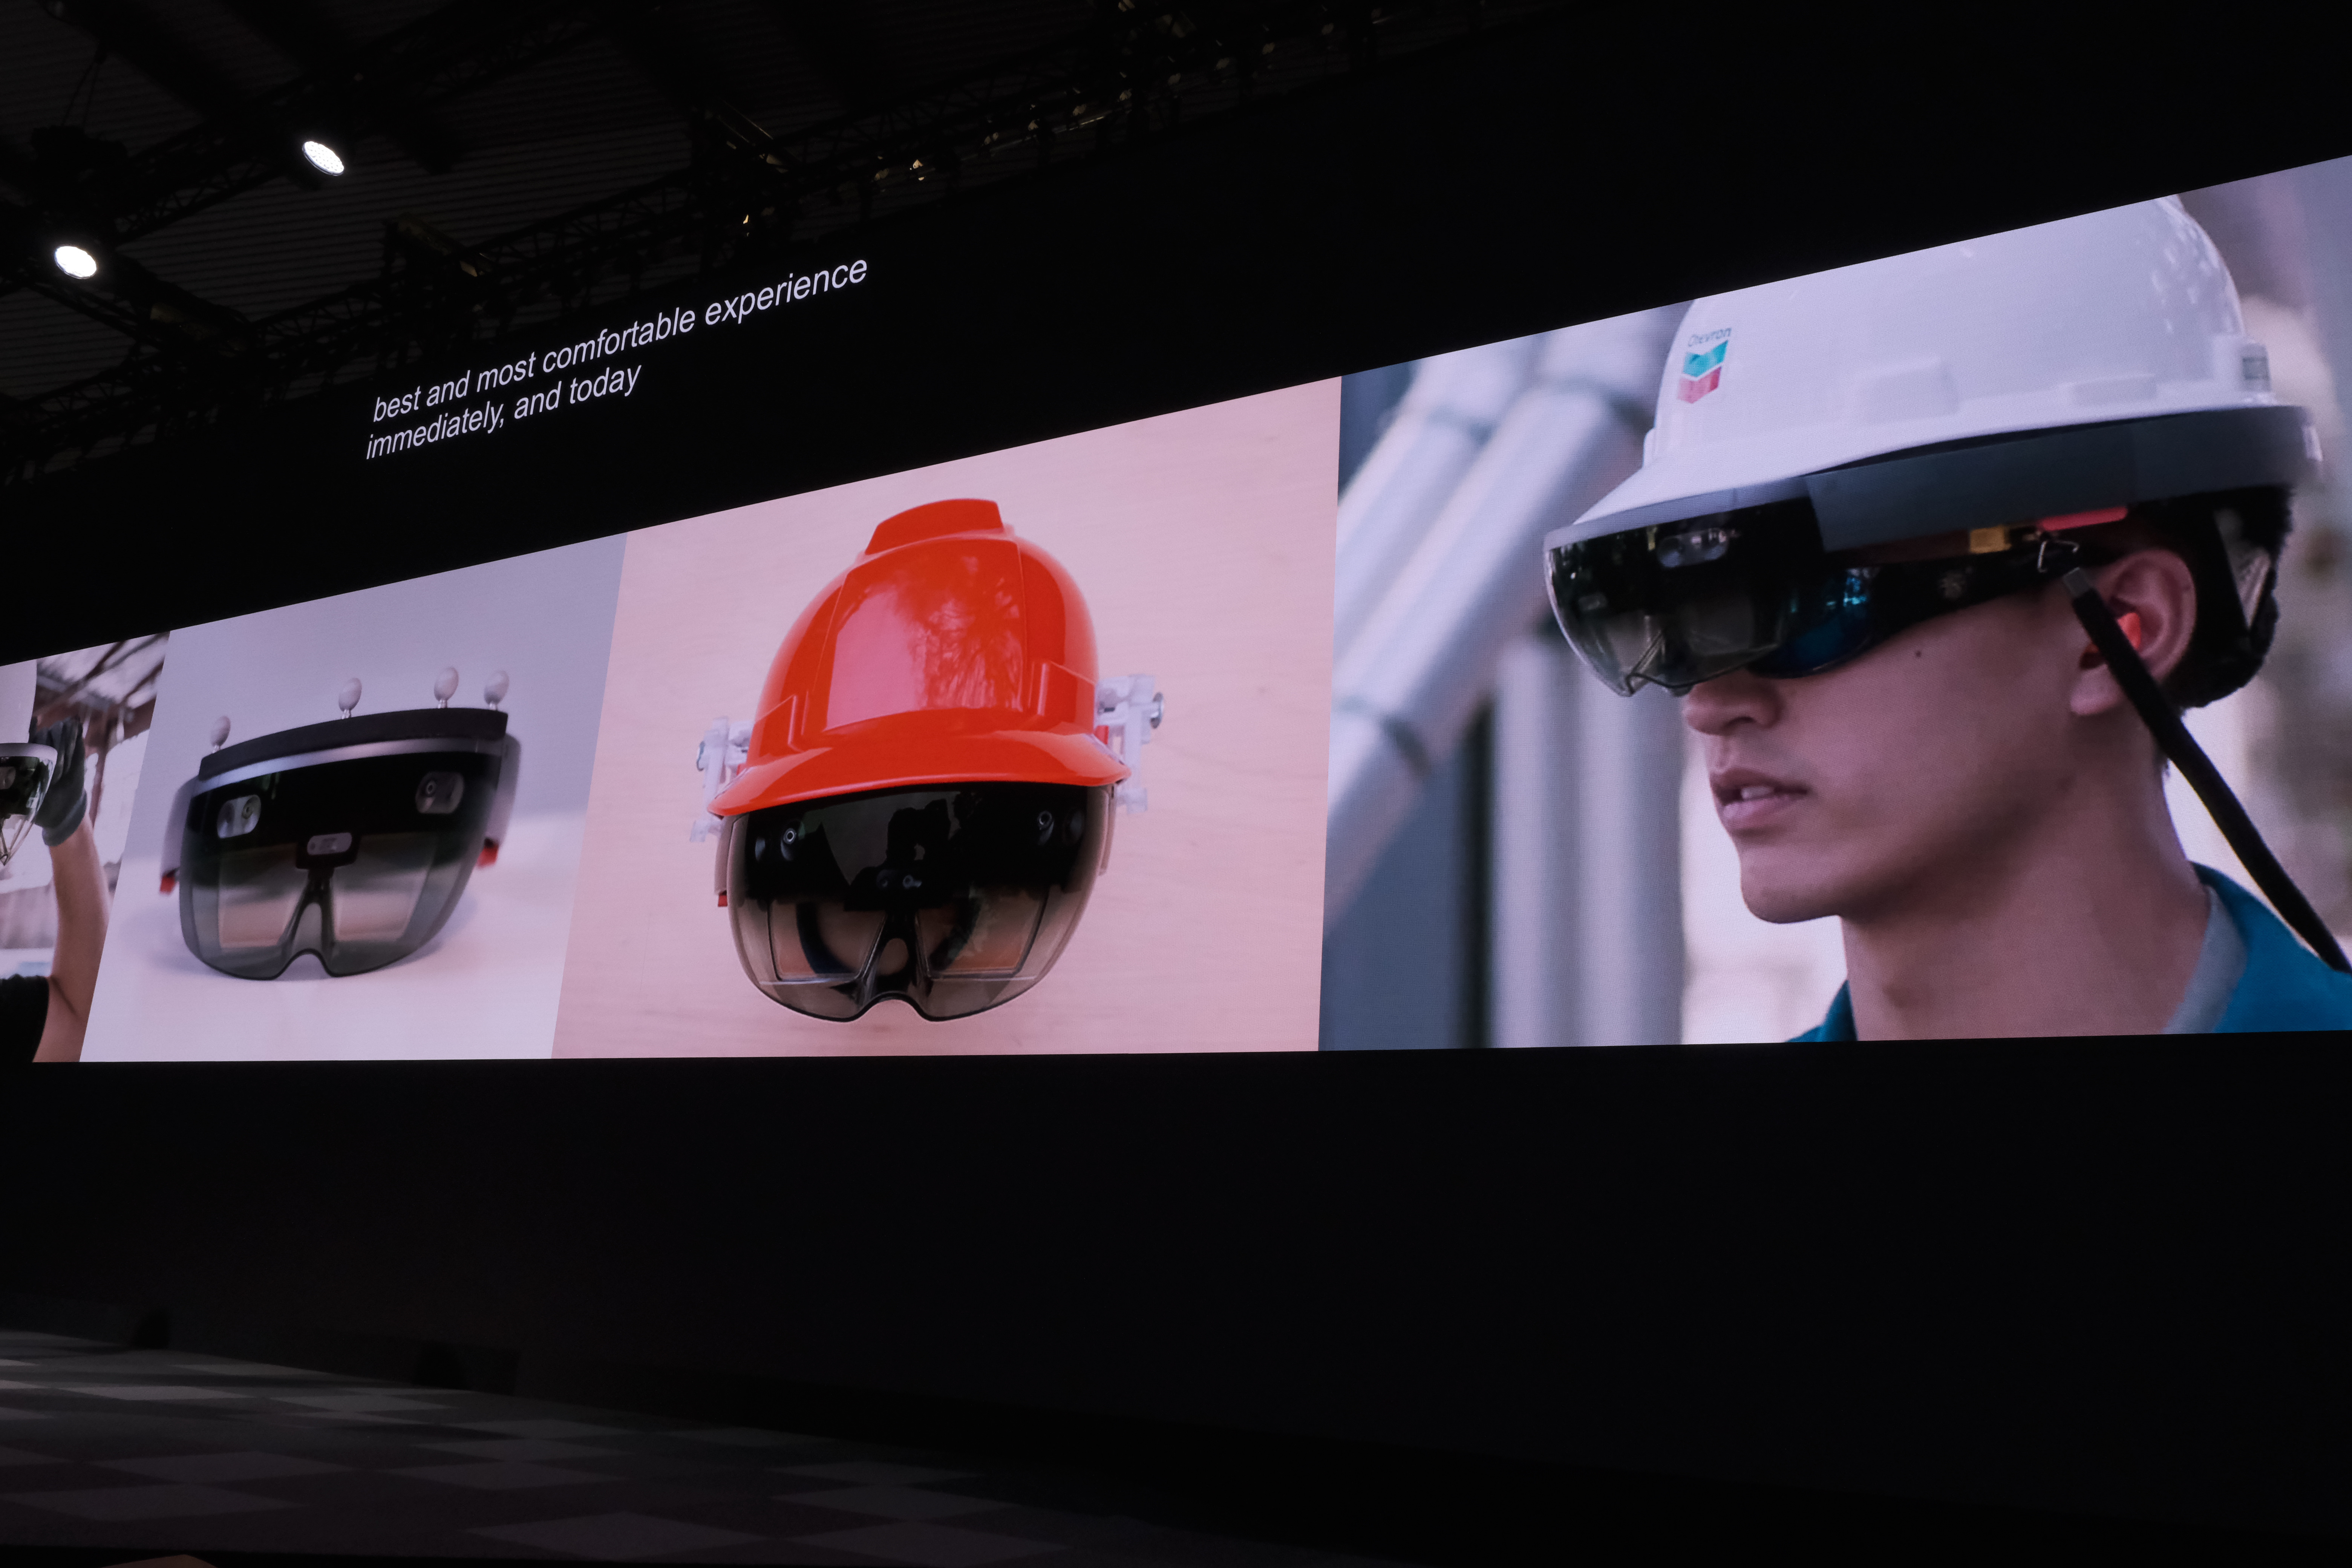 Say hello to Microsoft's new $3,500 HoloLens with twice the field of view